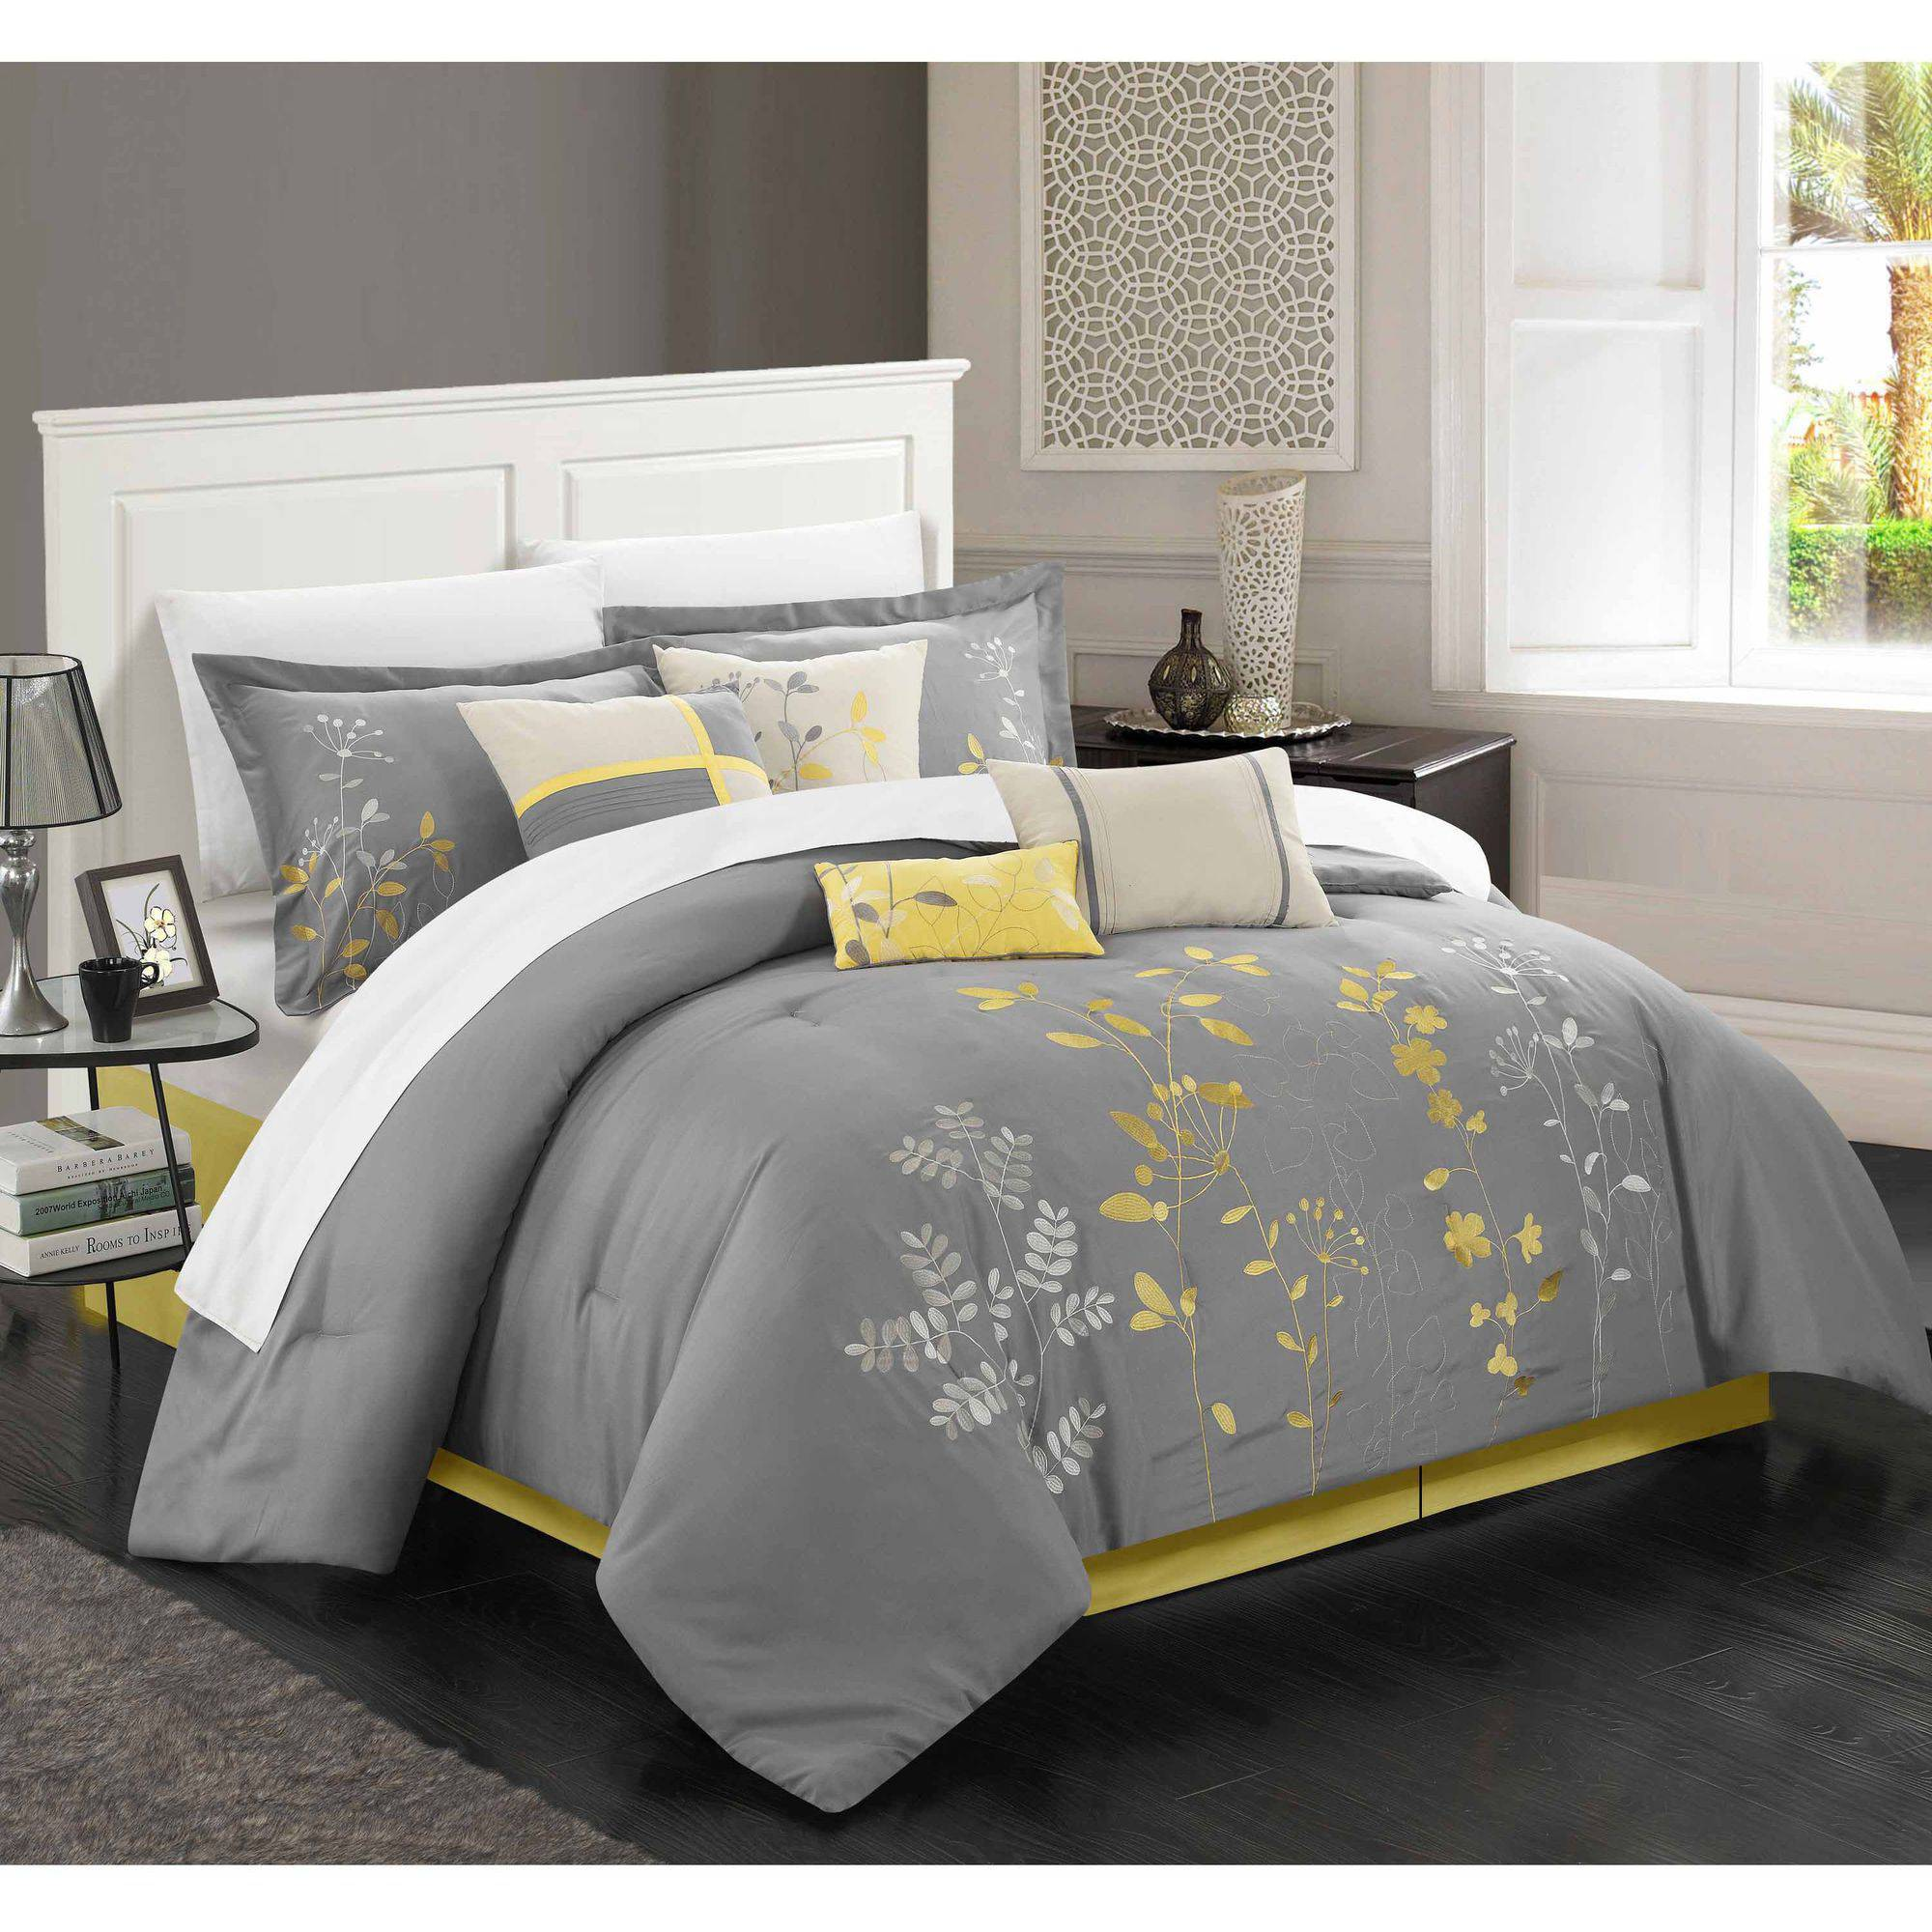 Chic Home Fortuno 8-Piece Embroidered Comforter Set